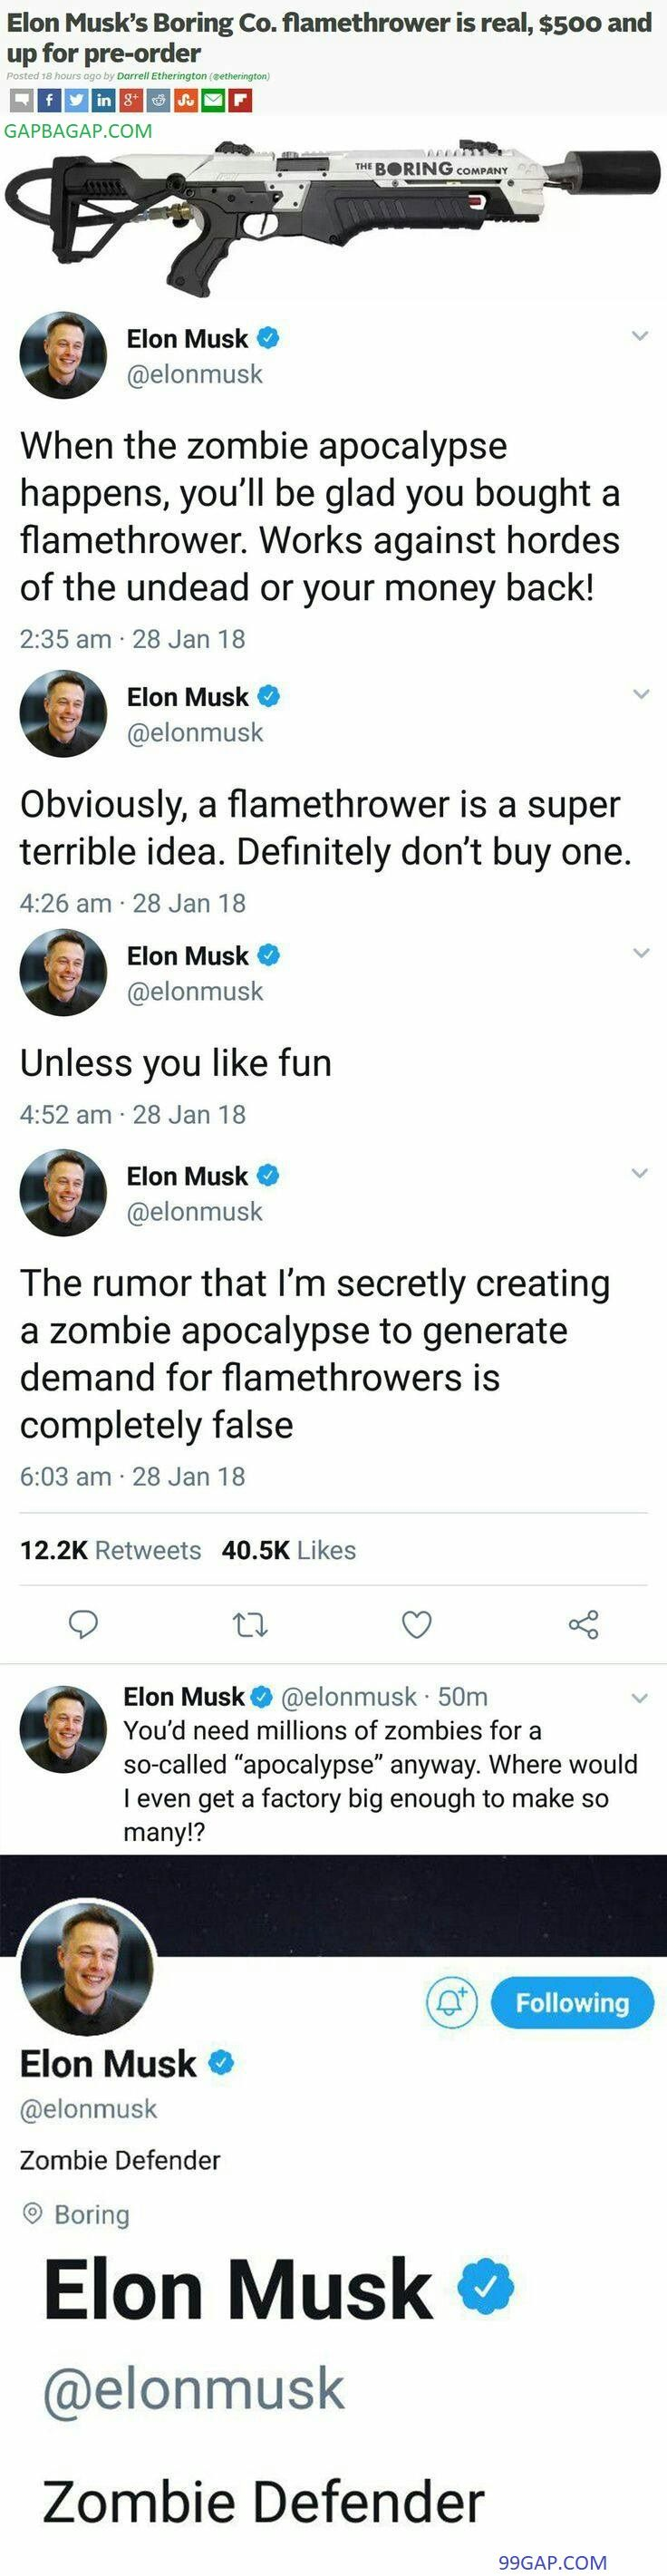 #Funny Tweets About Elon Musk vs. Zombies